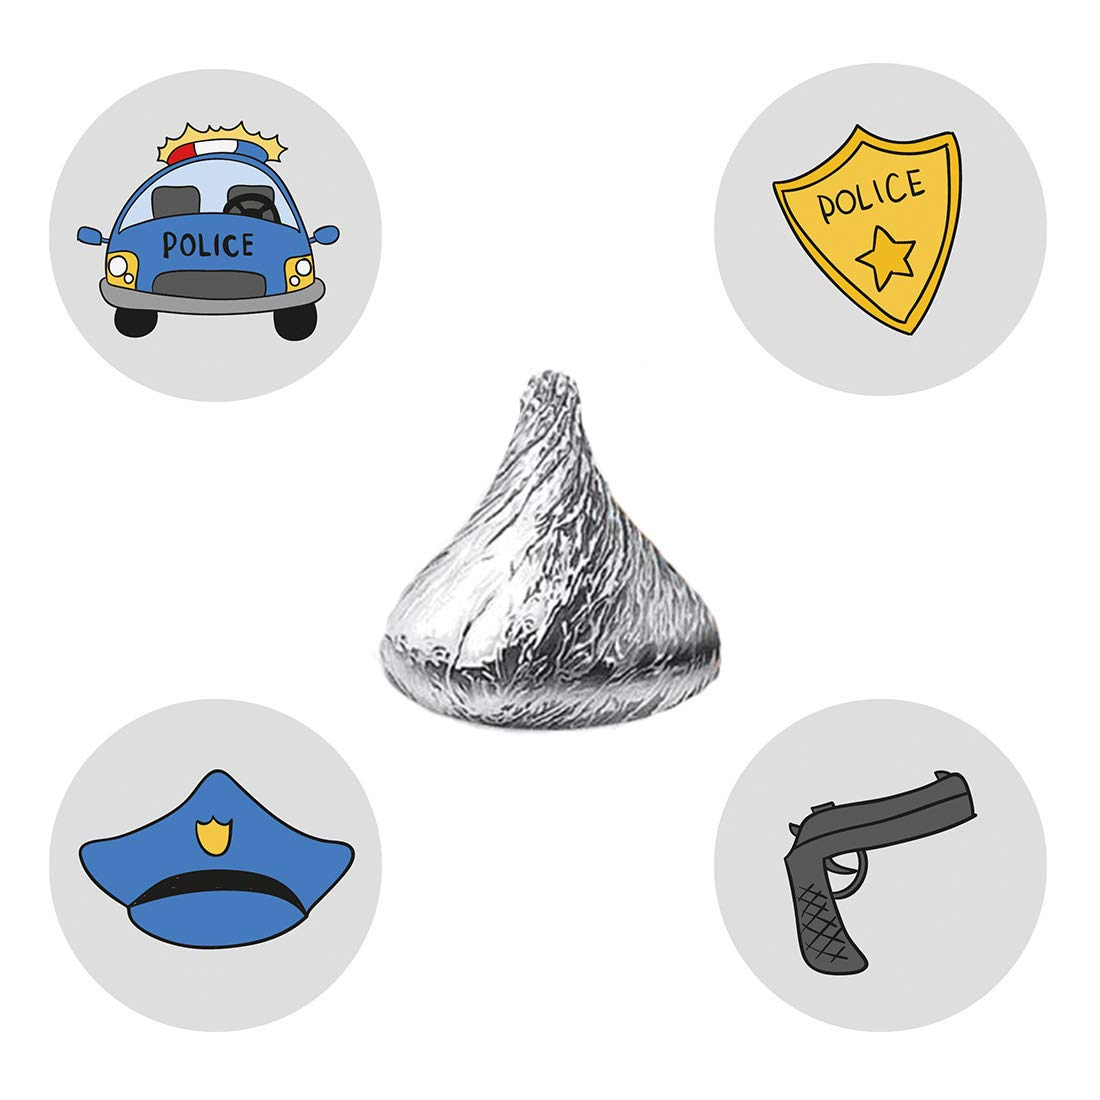 MAGJUCHE Police Party Candy Stickers, Boy or Girl Birthday Party Favor Labels, Fit Hershey's Kisses, 304 Count